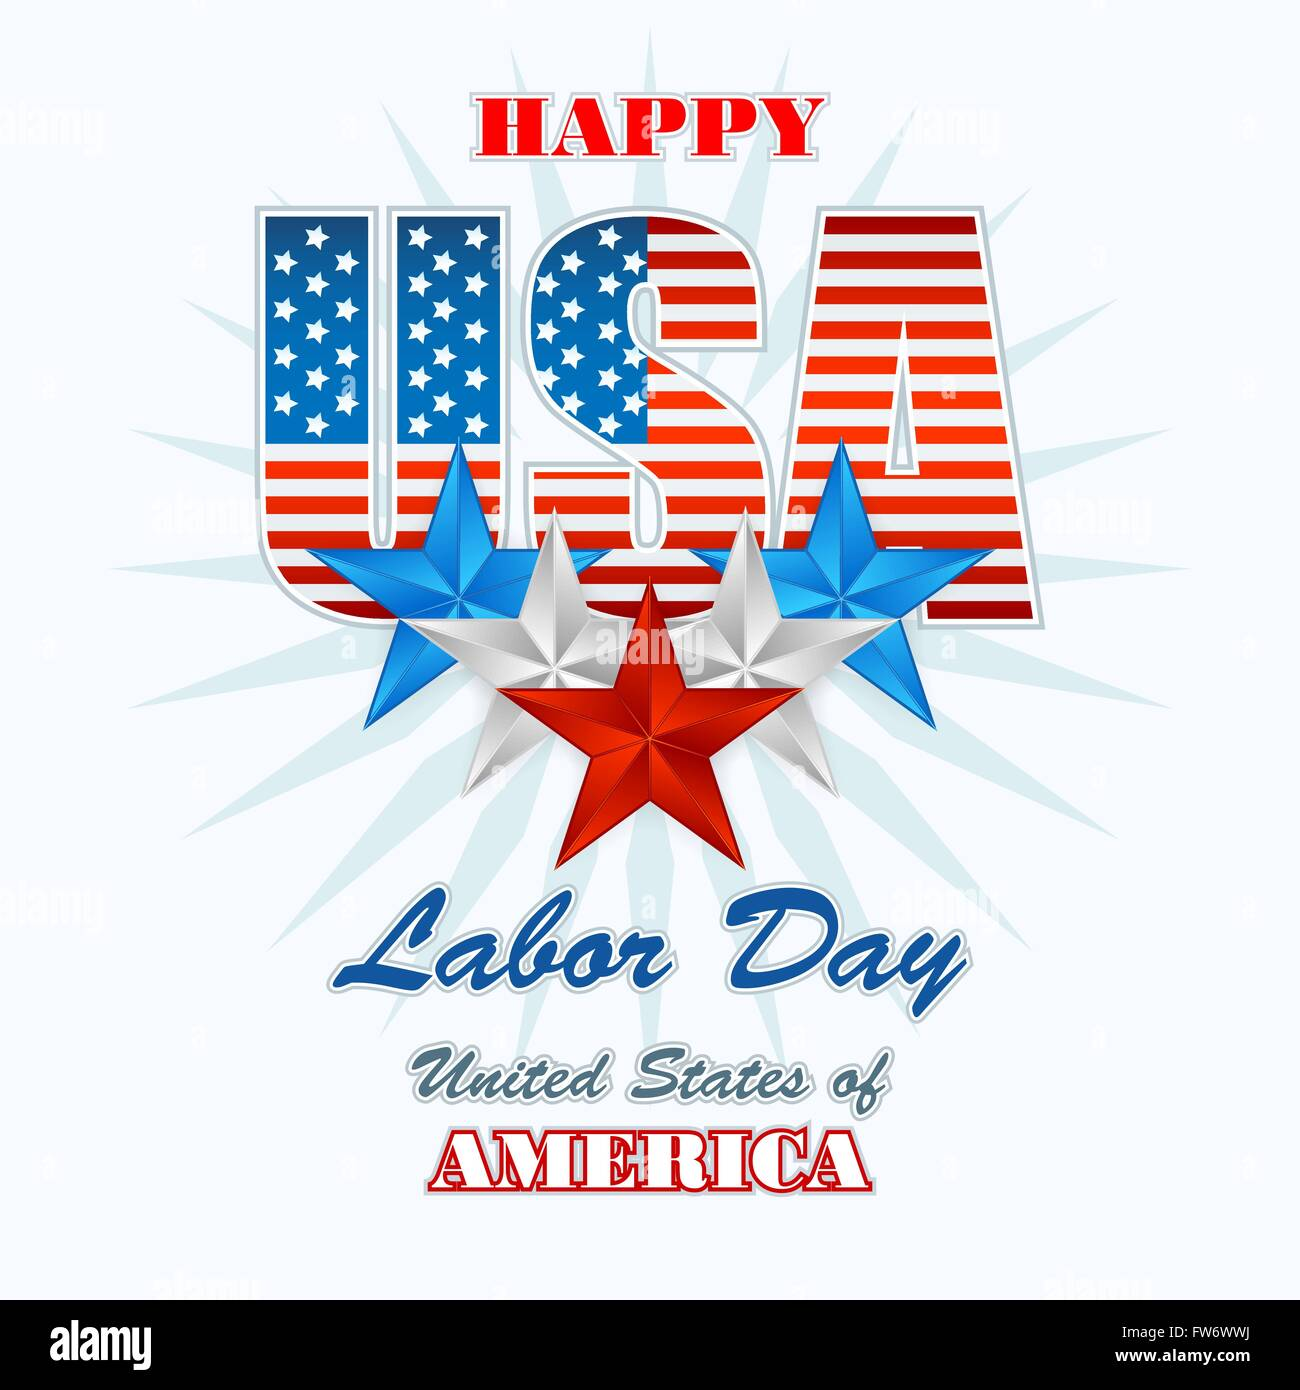 Holidays design template with national American flag colors for